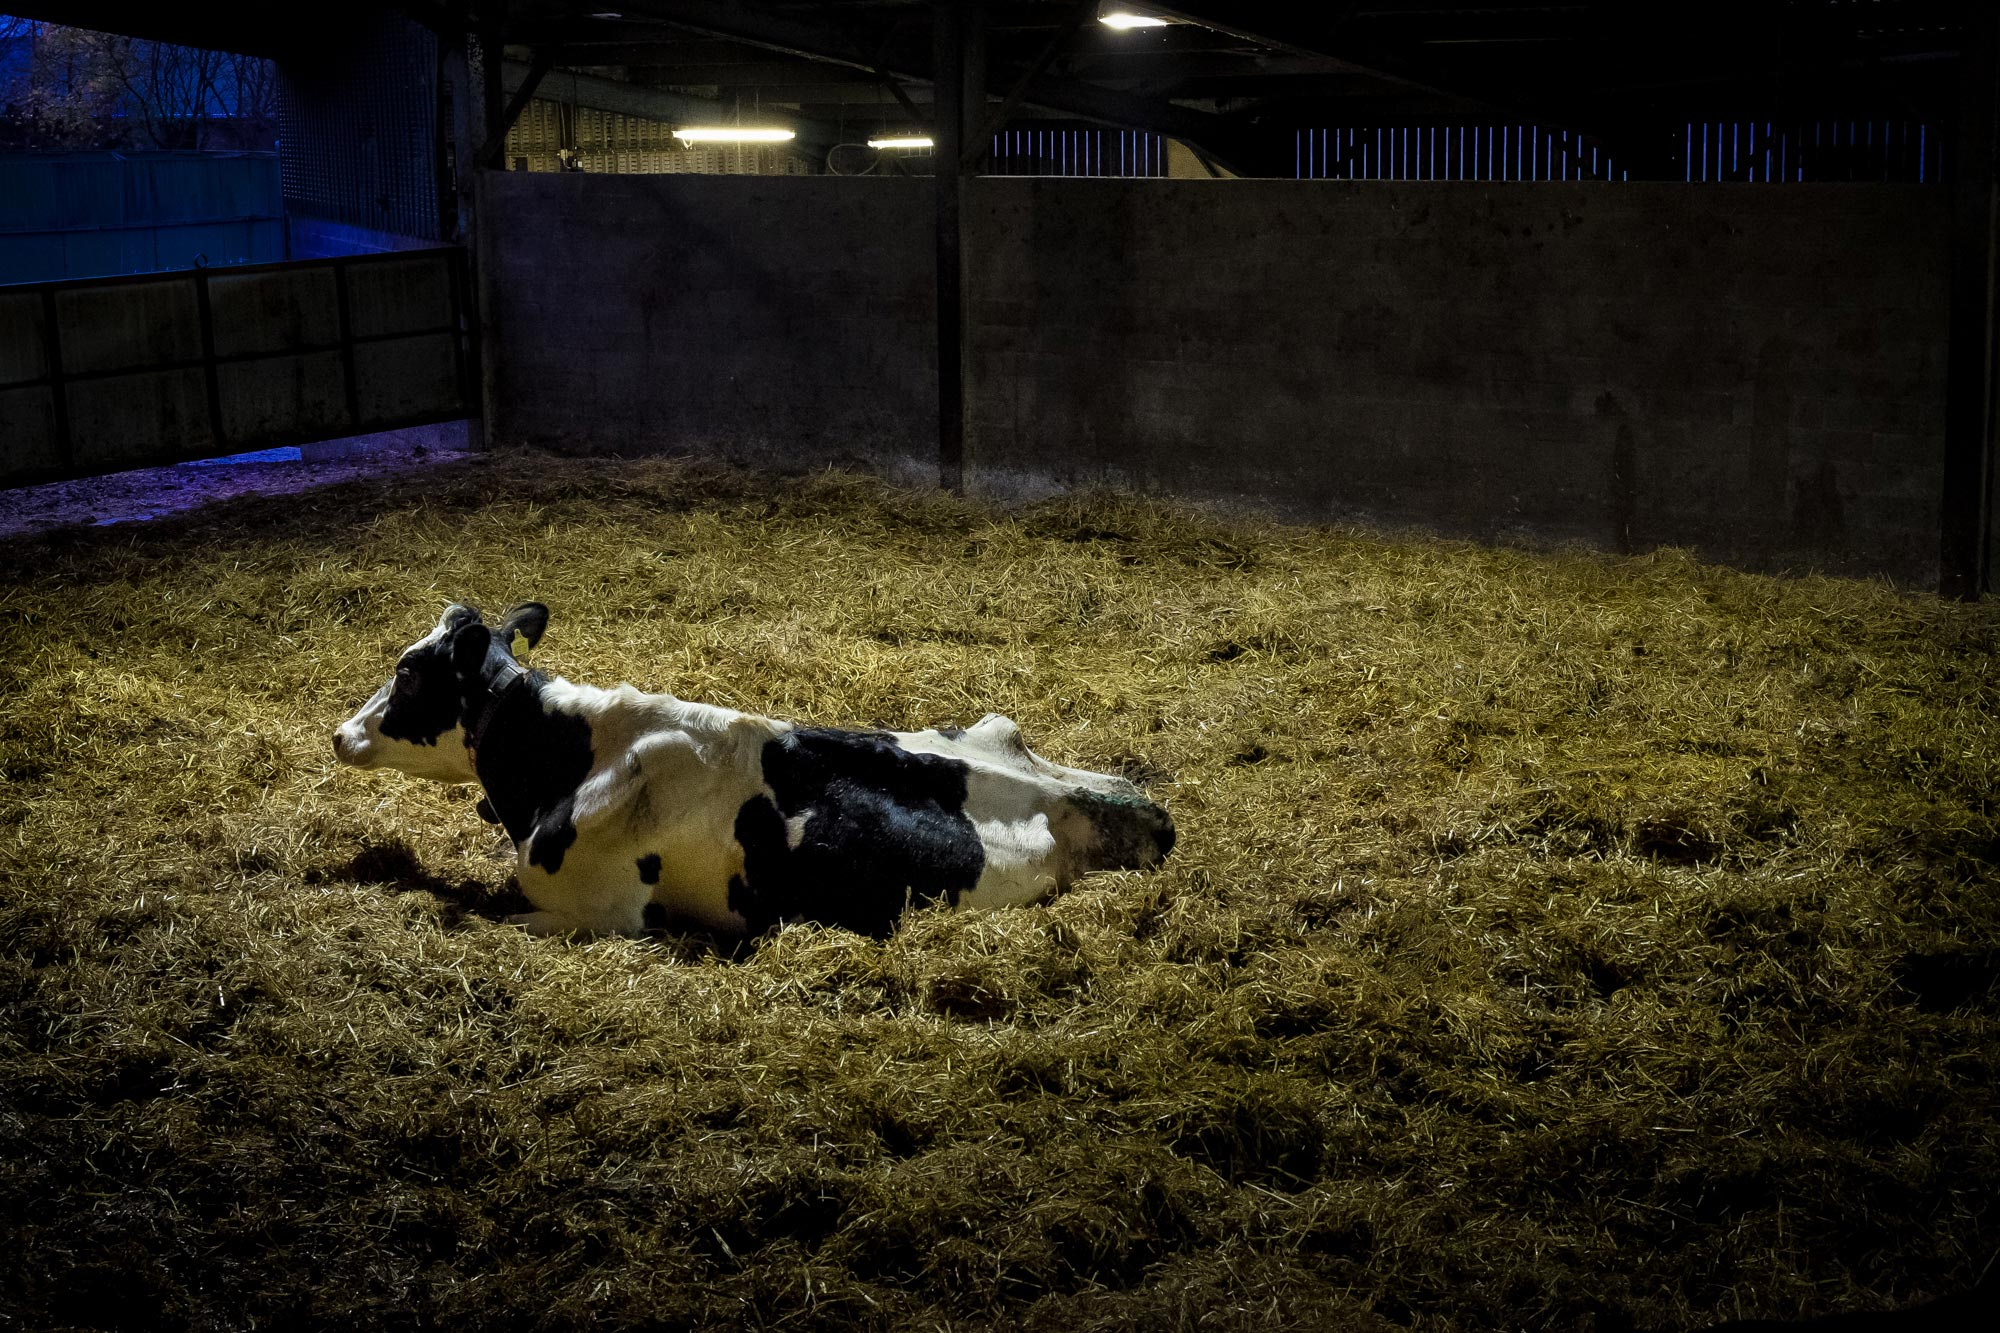 Mackies_pregnant_cow_copyright_broad_daylight.jpg